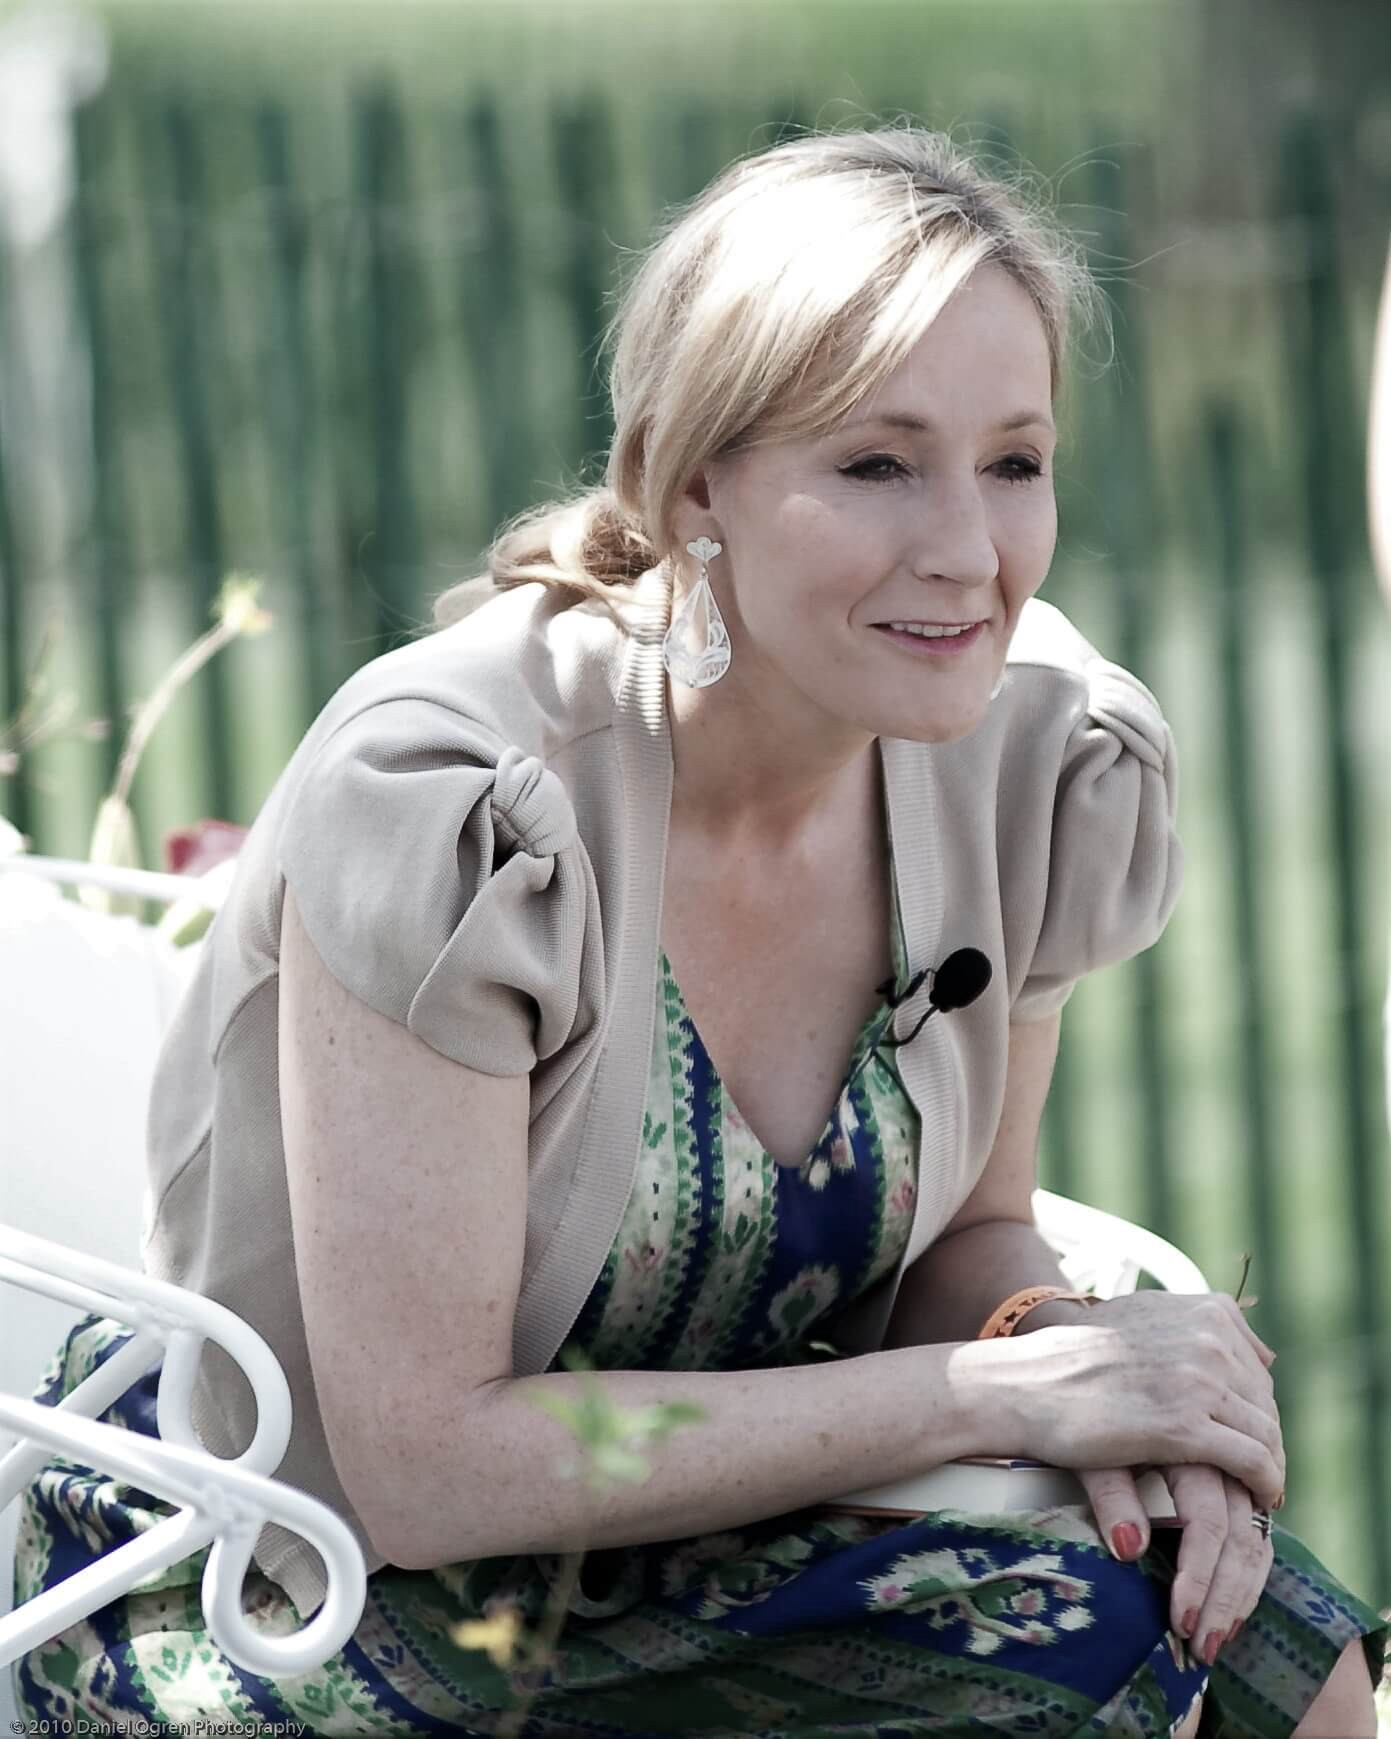 J K  Rowling: How to Deal with Failure - Personal Growth